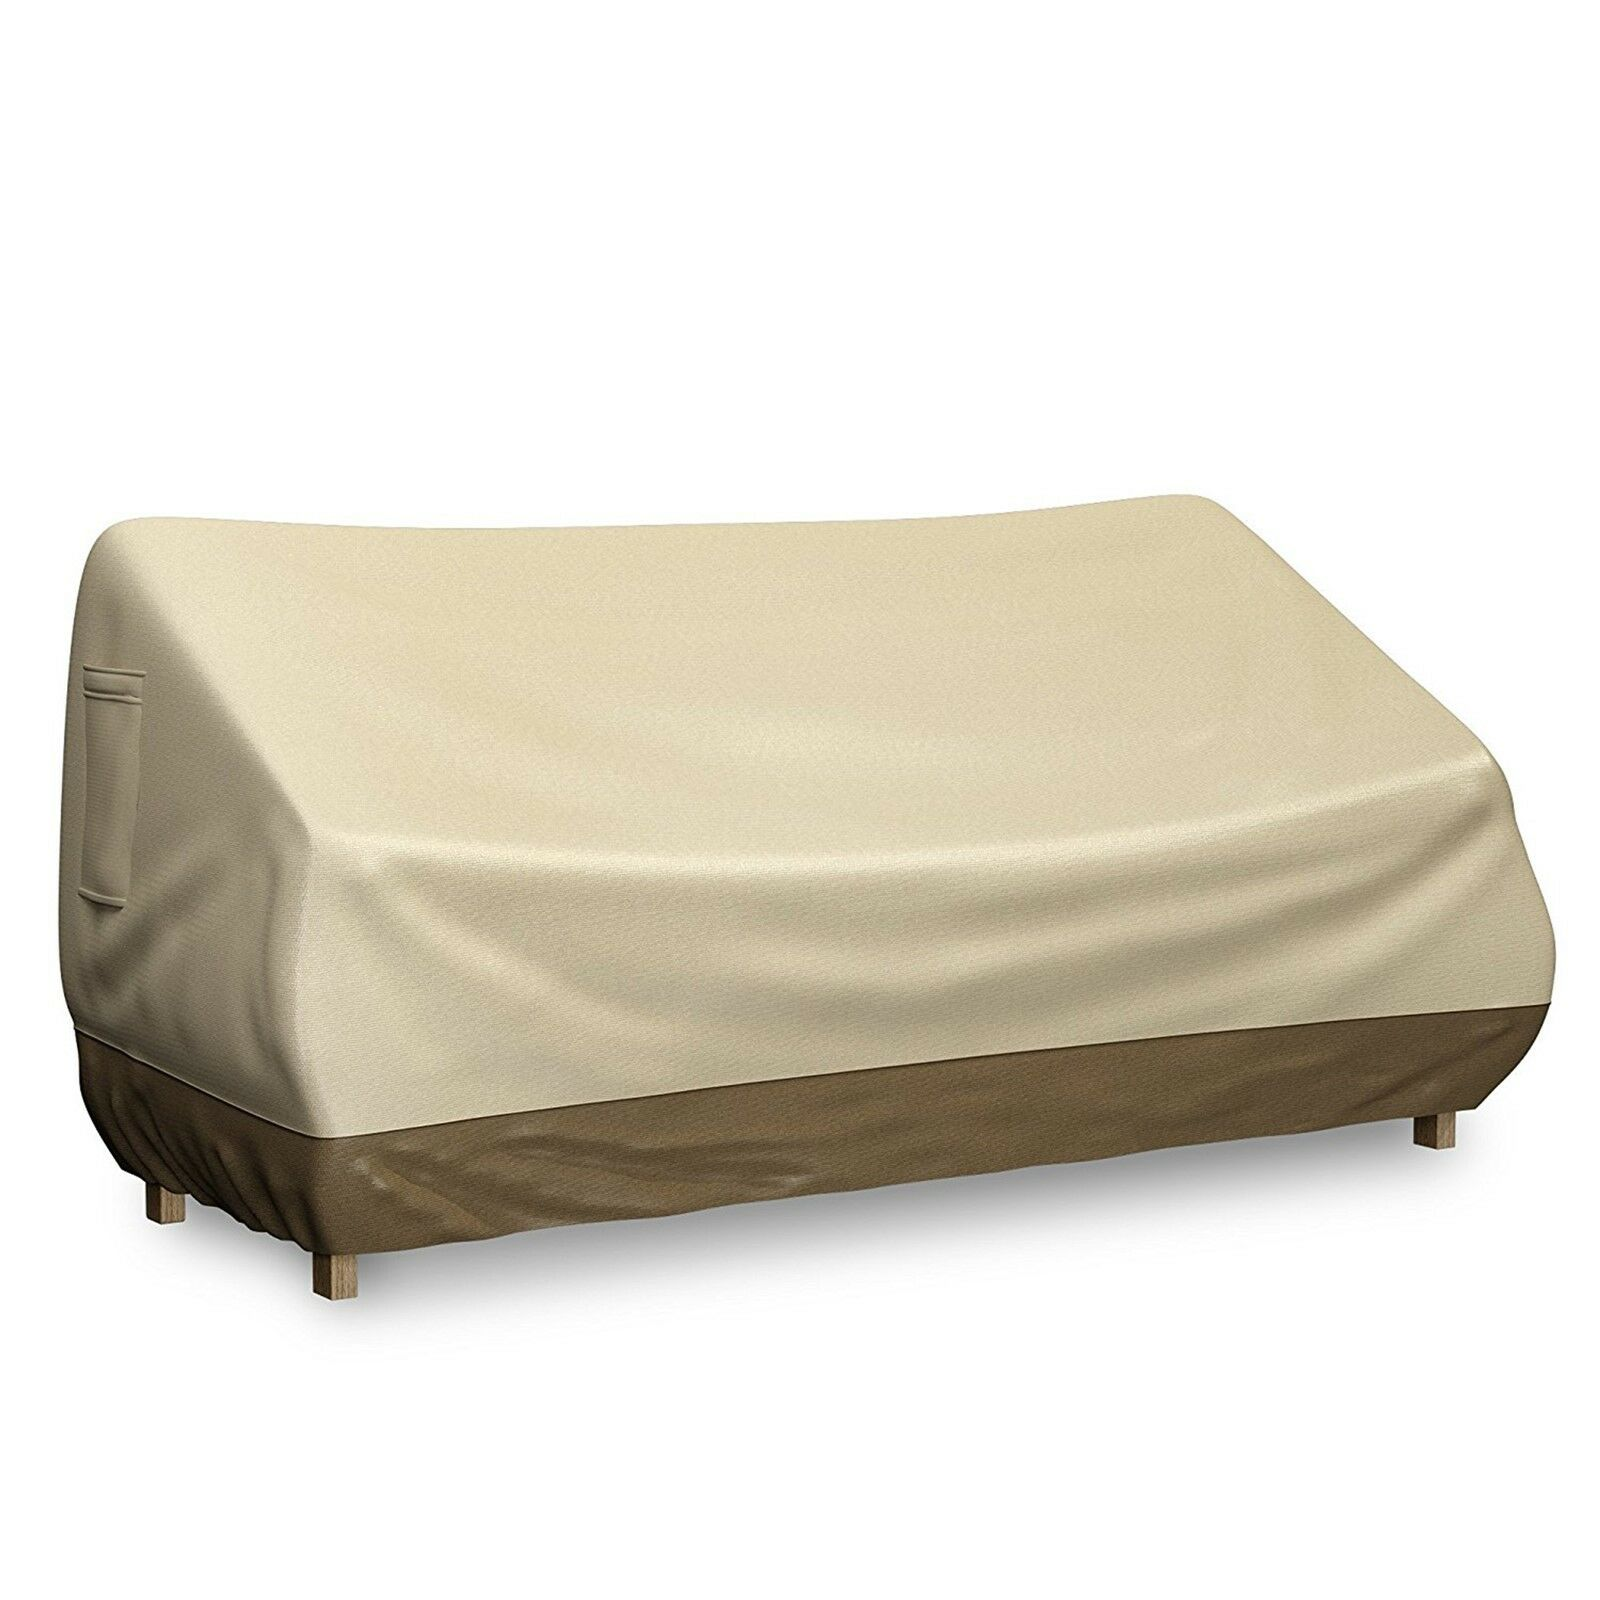 Loveseat Bench Outdoor Patio Furniture Cover 58 Inch Heavy D